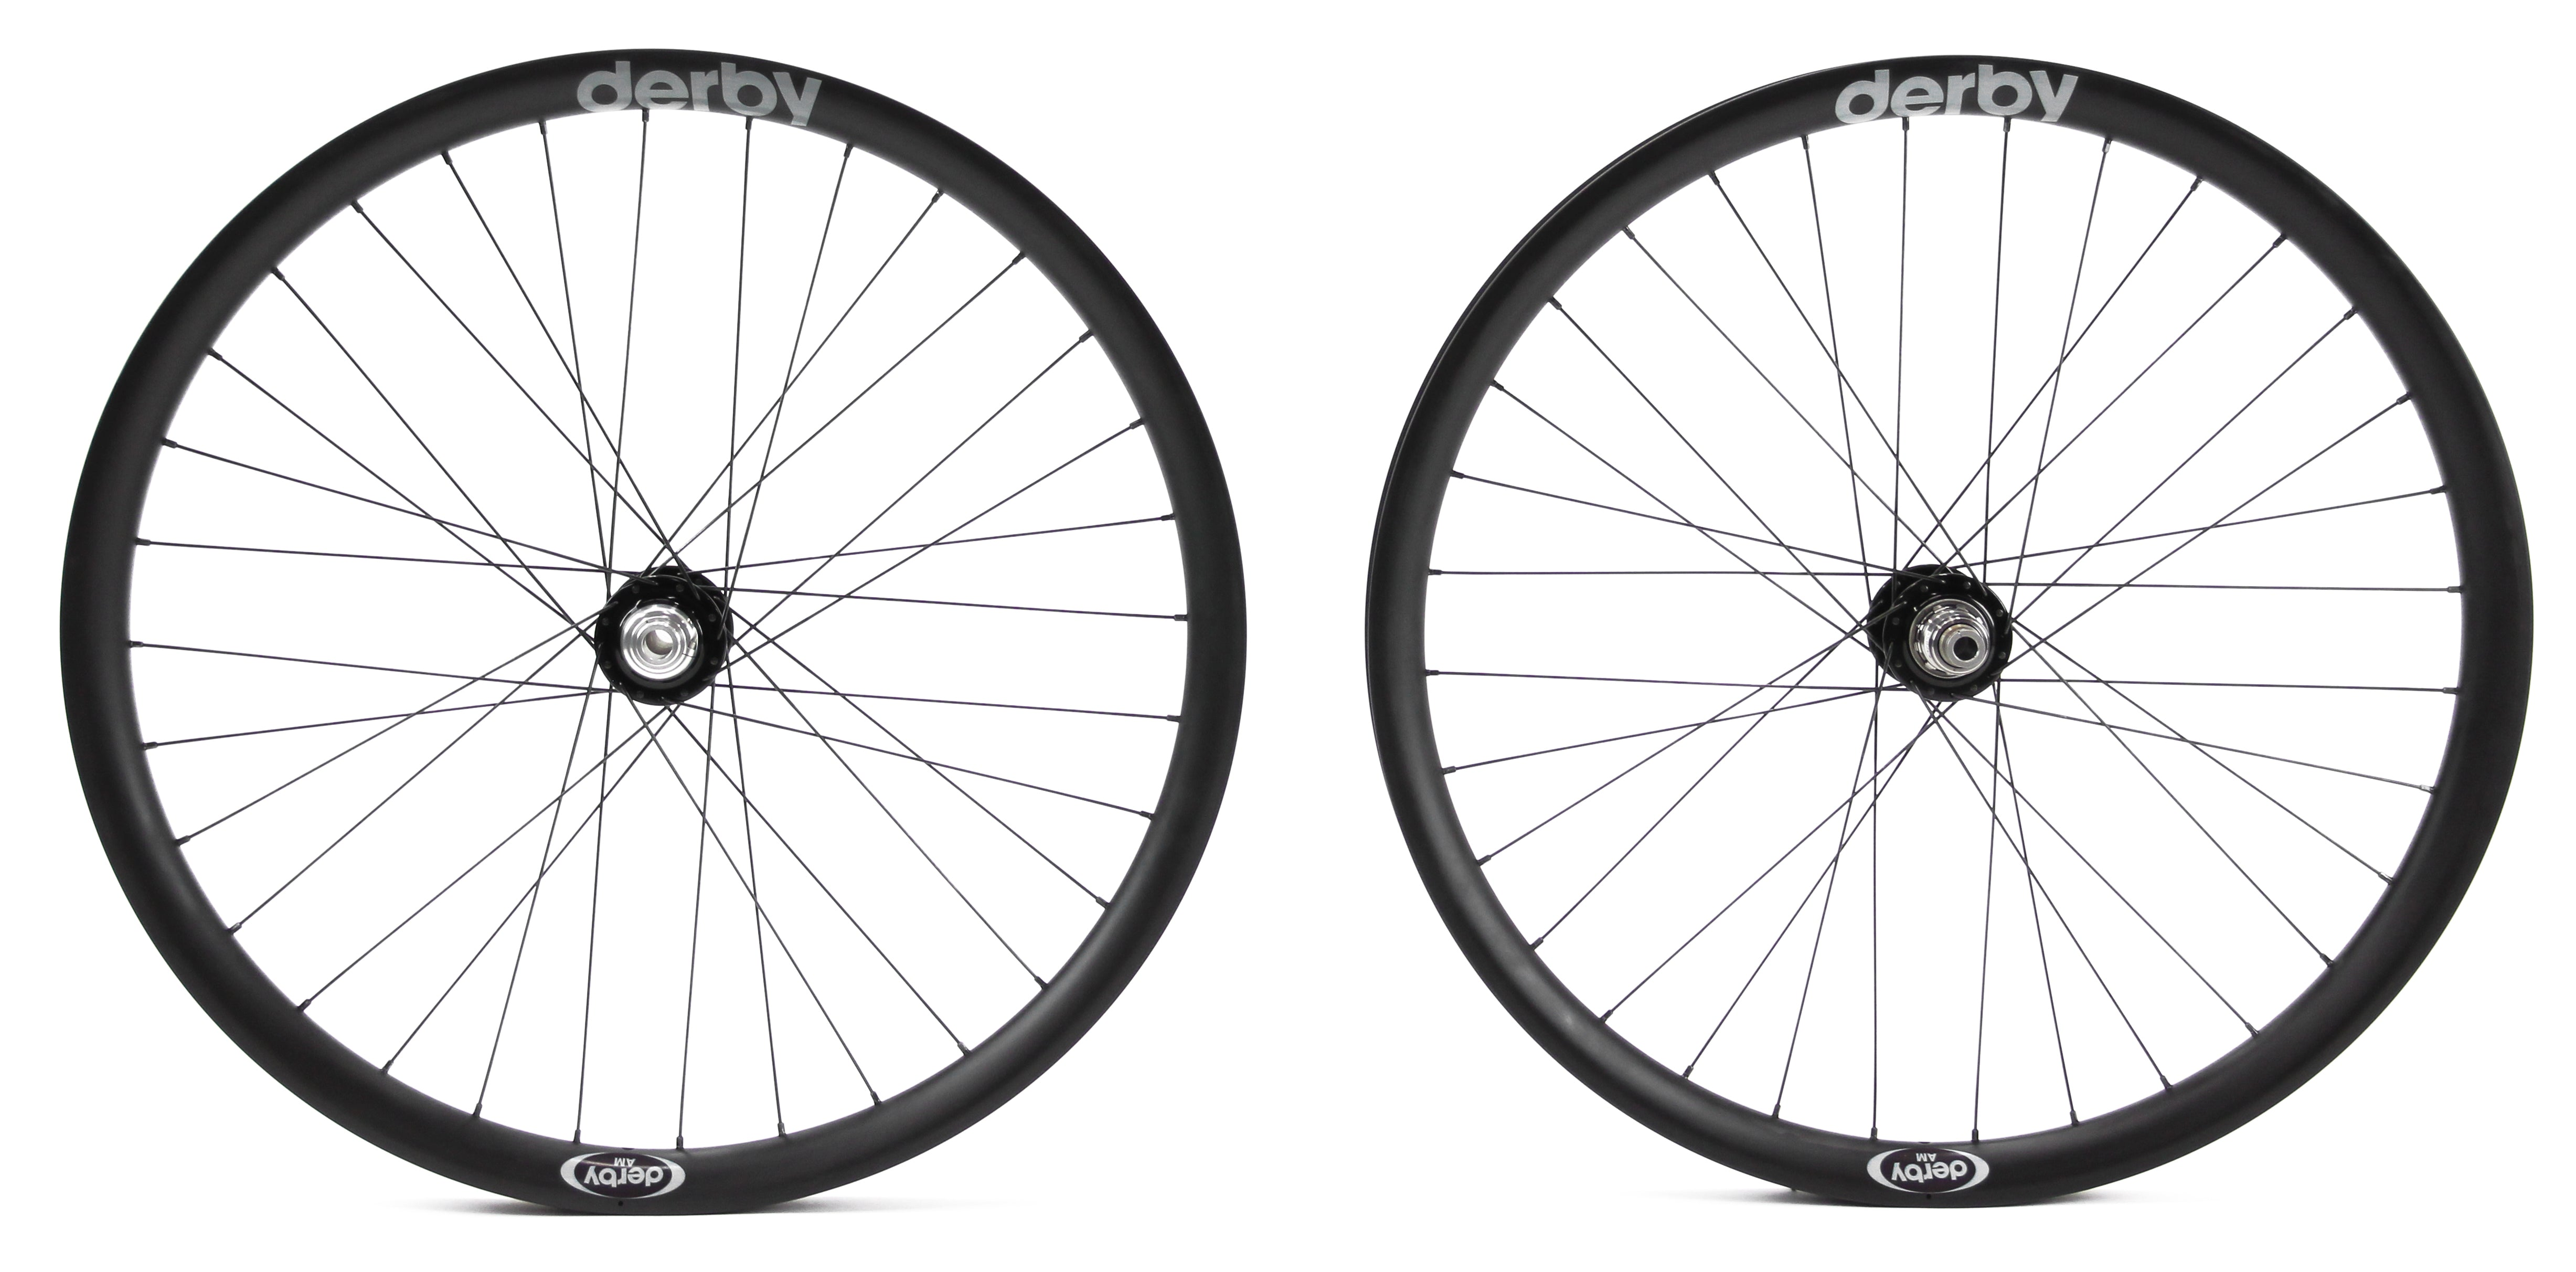 Derby Carbon Fiber MTB Rims - Worldwide Cyclery